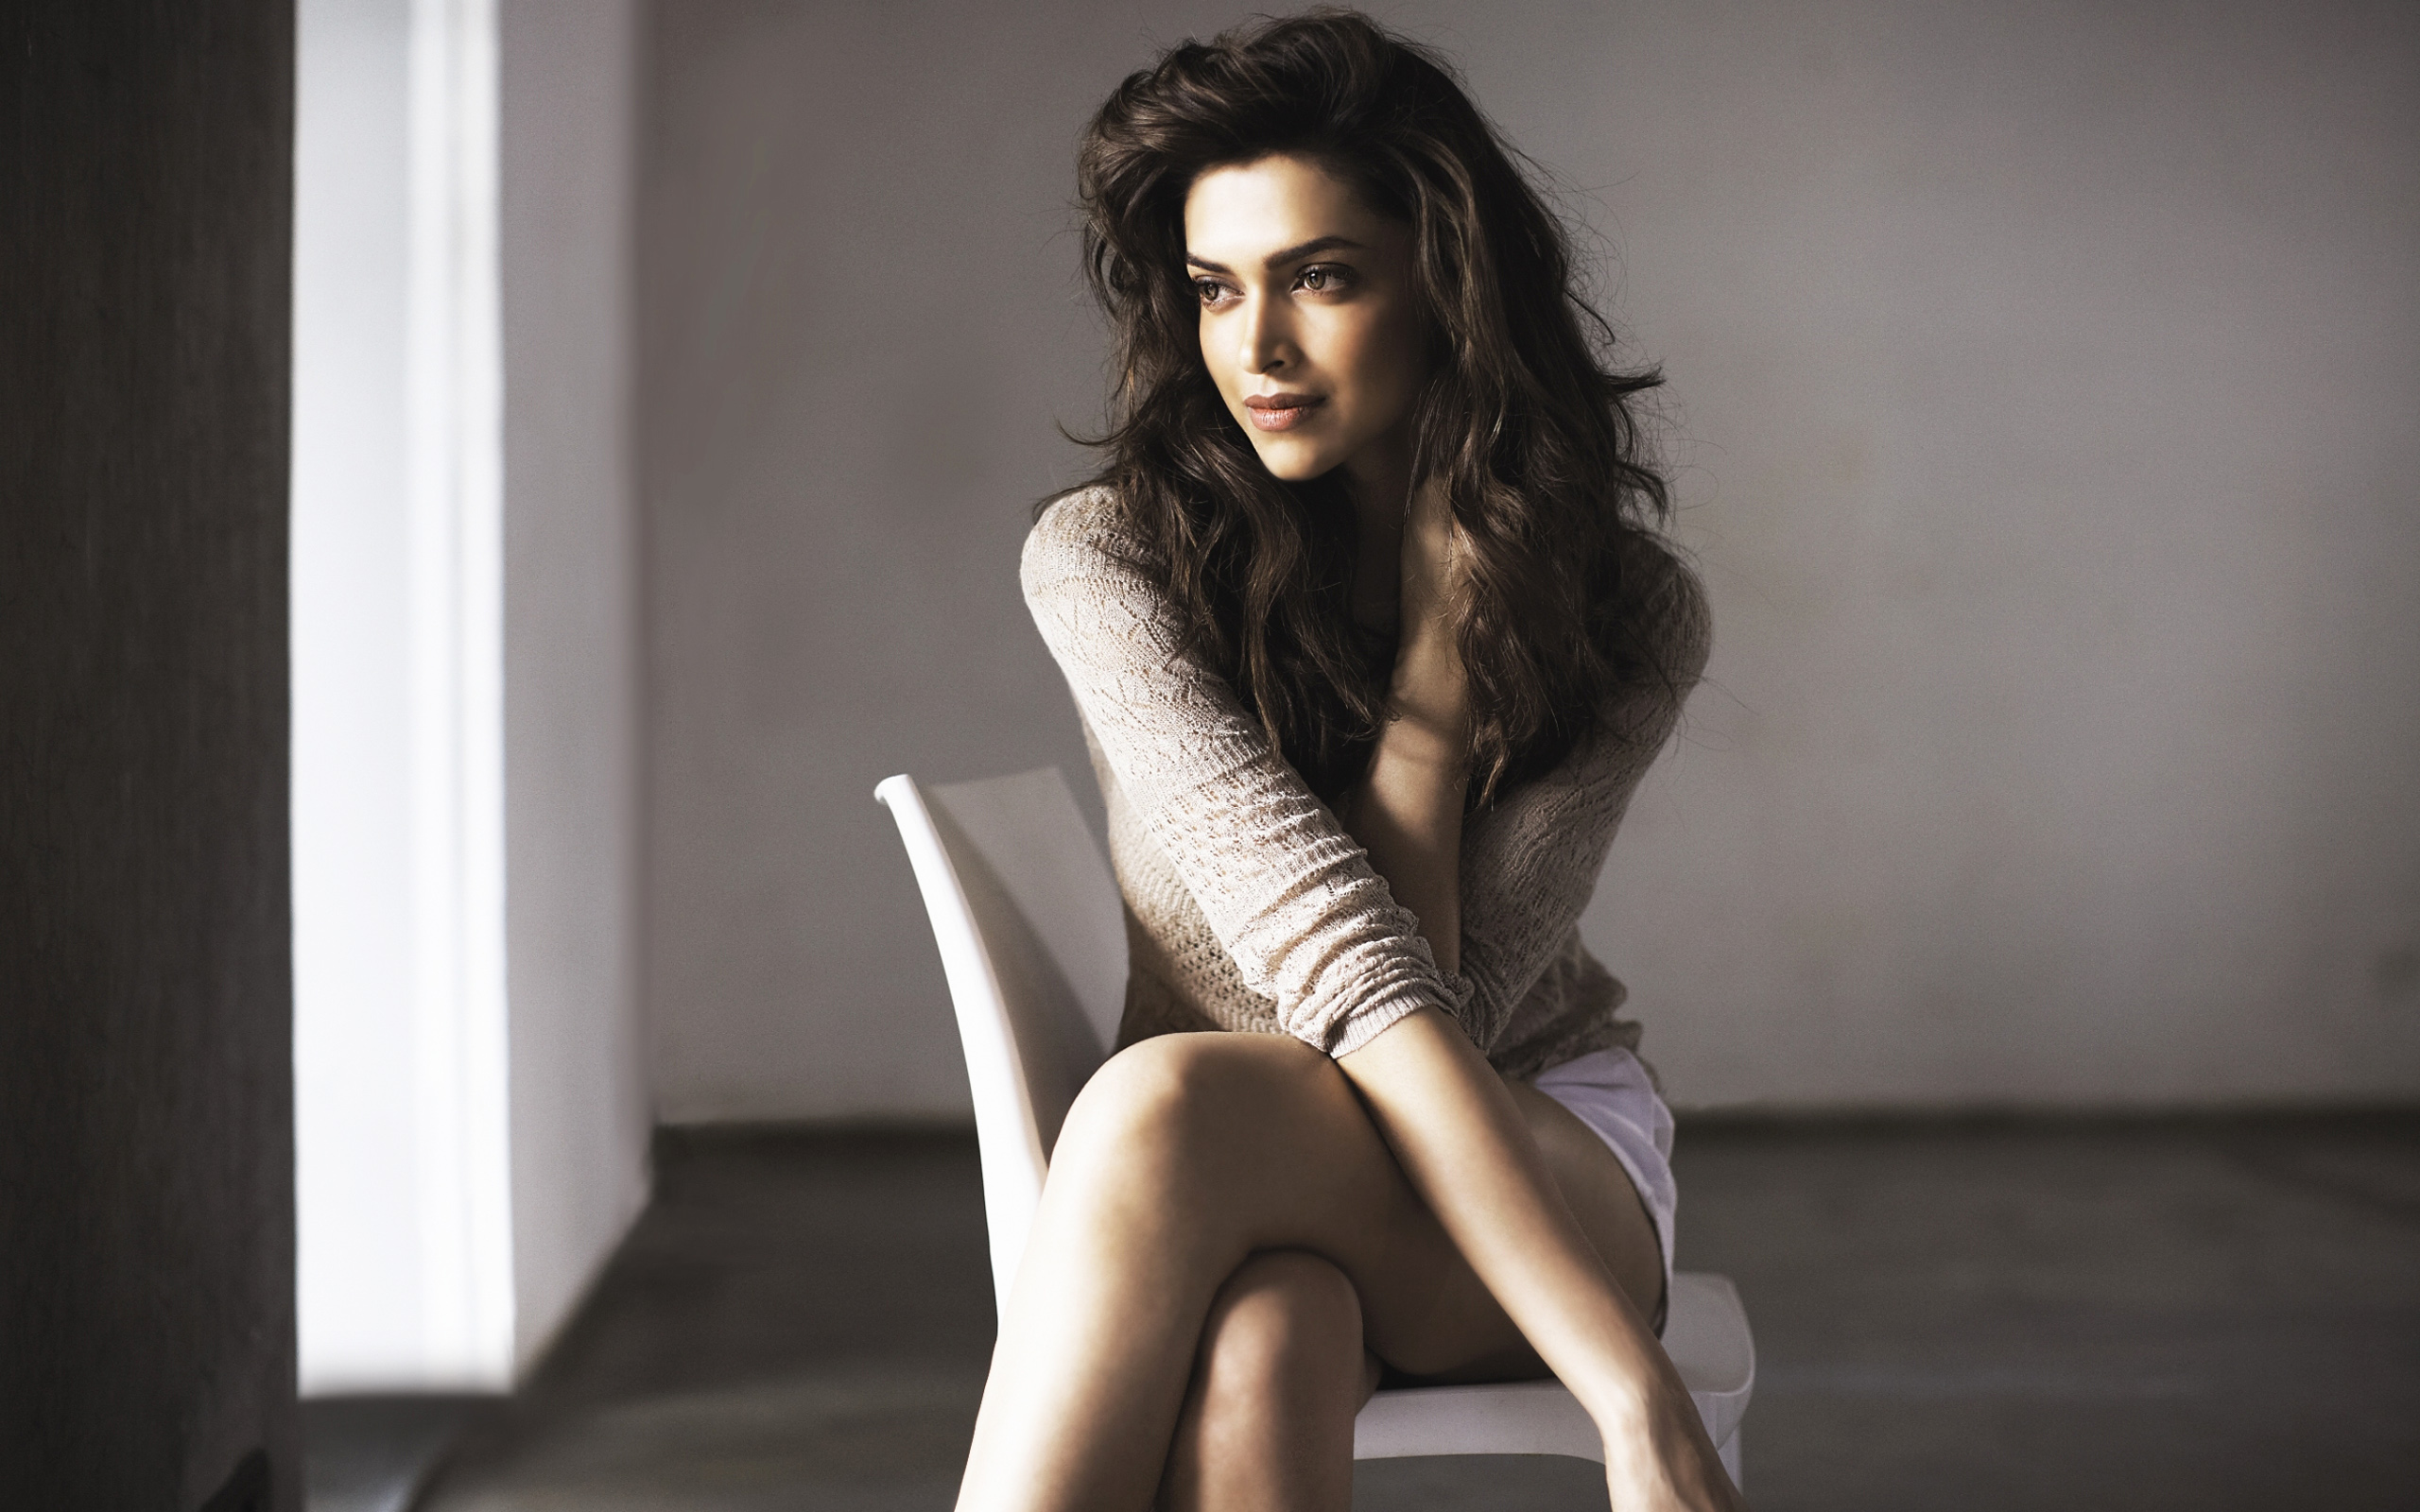 Pic 5: Deepika Padukone Hot Pics: 10 best from Photoshoots